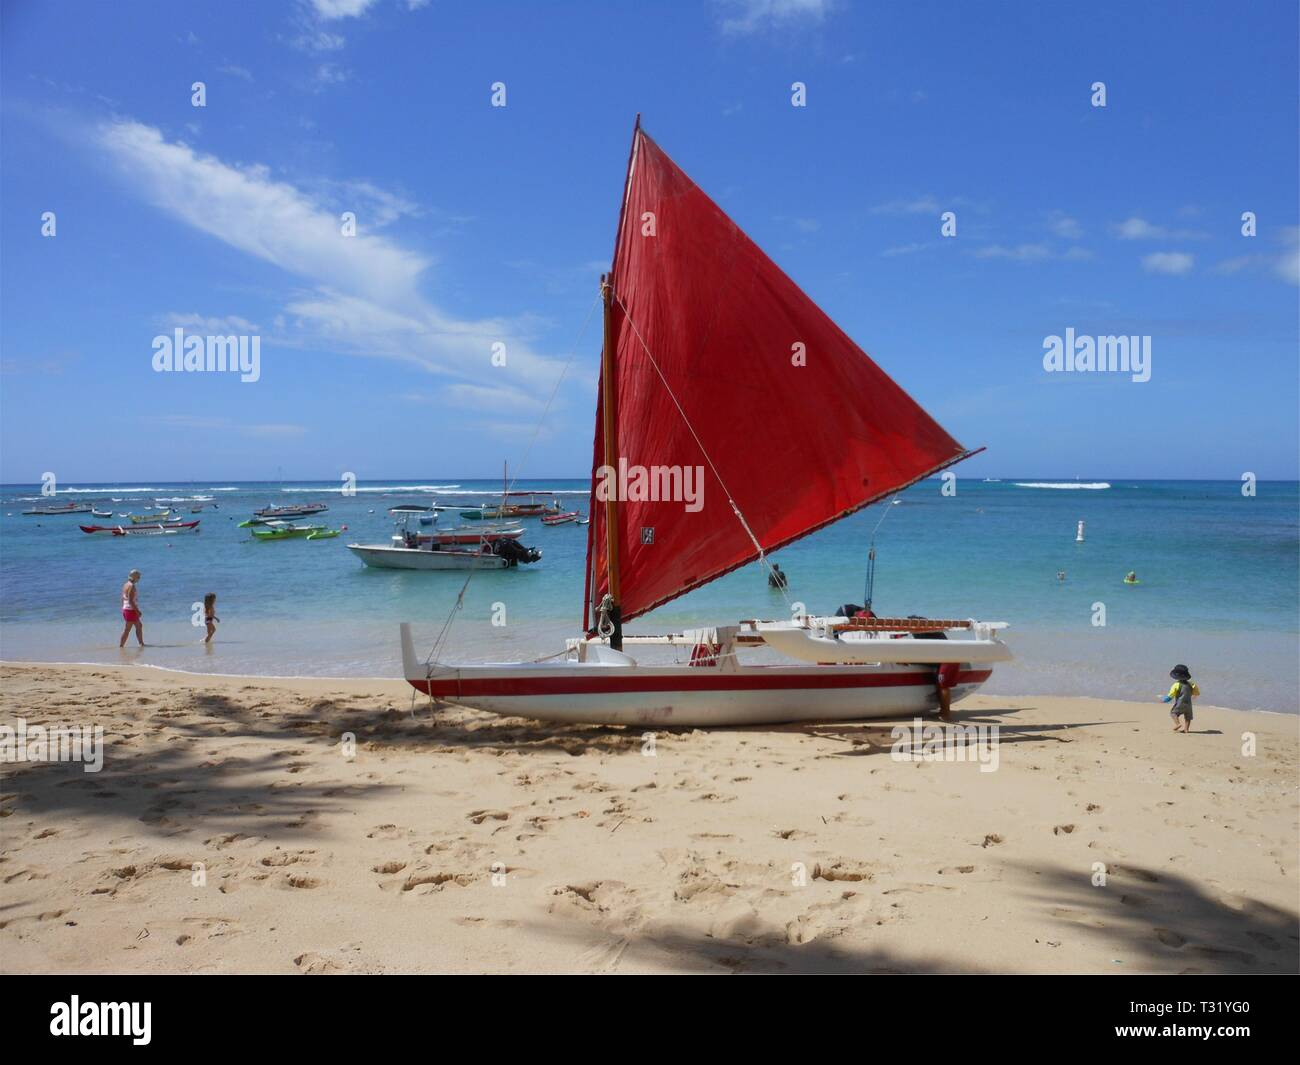 Red Sail Outrigger - Stock Image